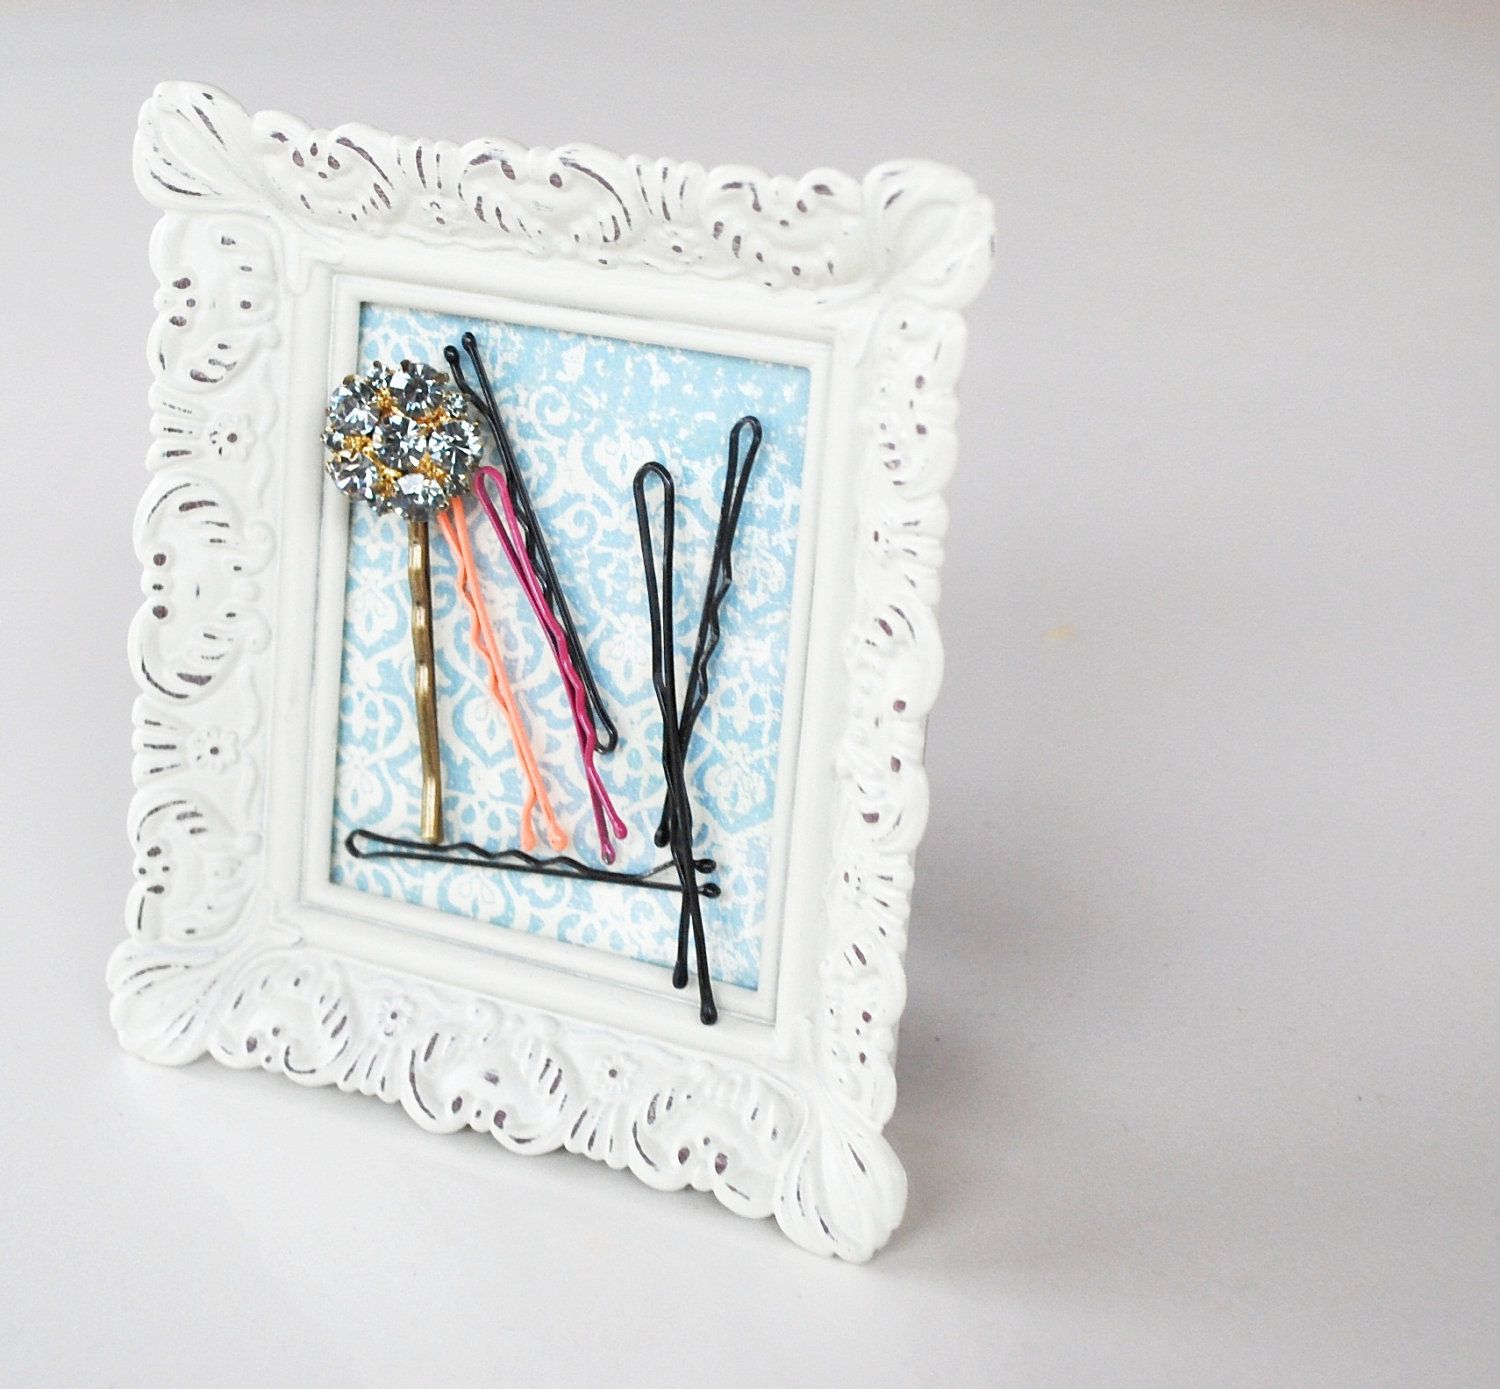 frame bobby pin holder for womens hair pins. | Party Idea ...